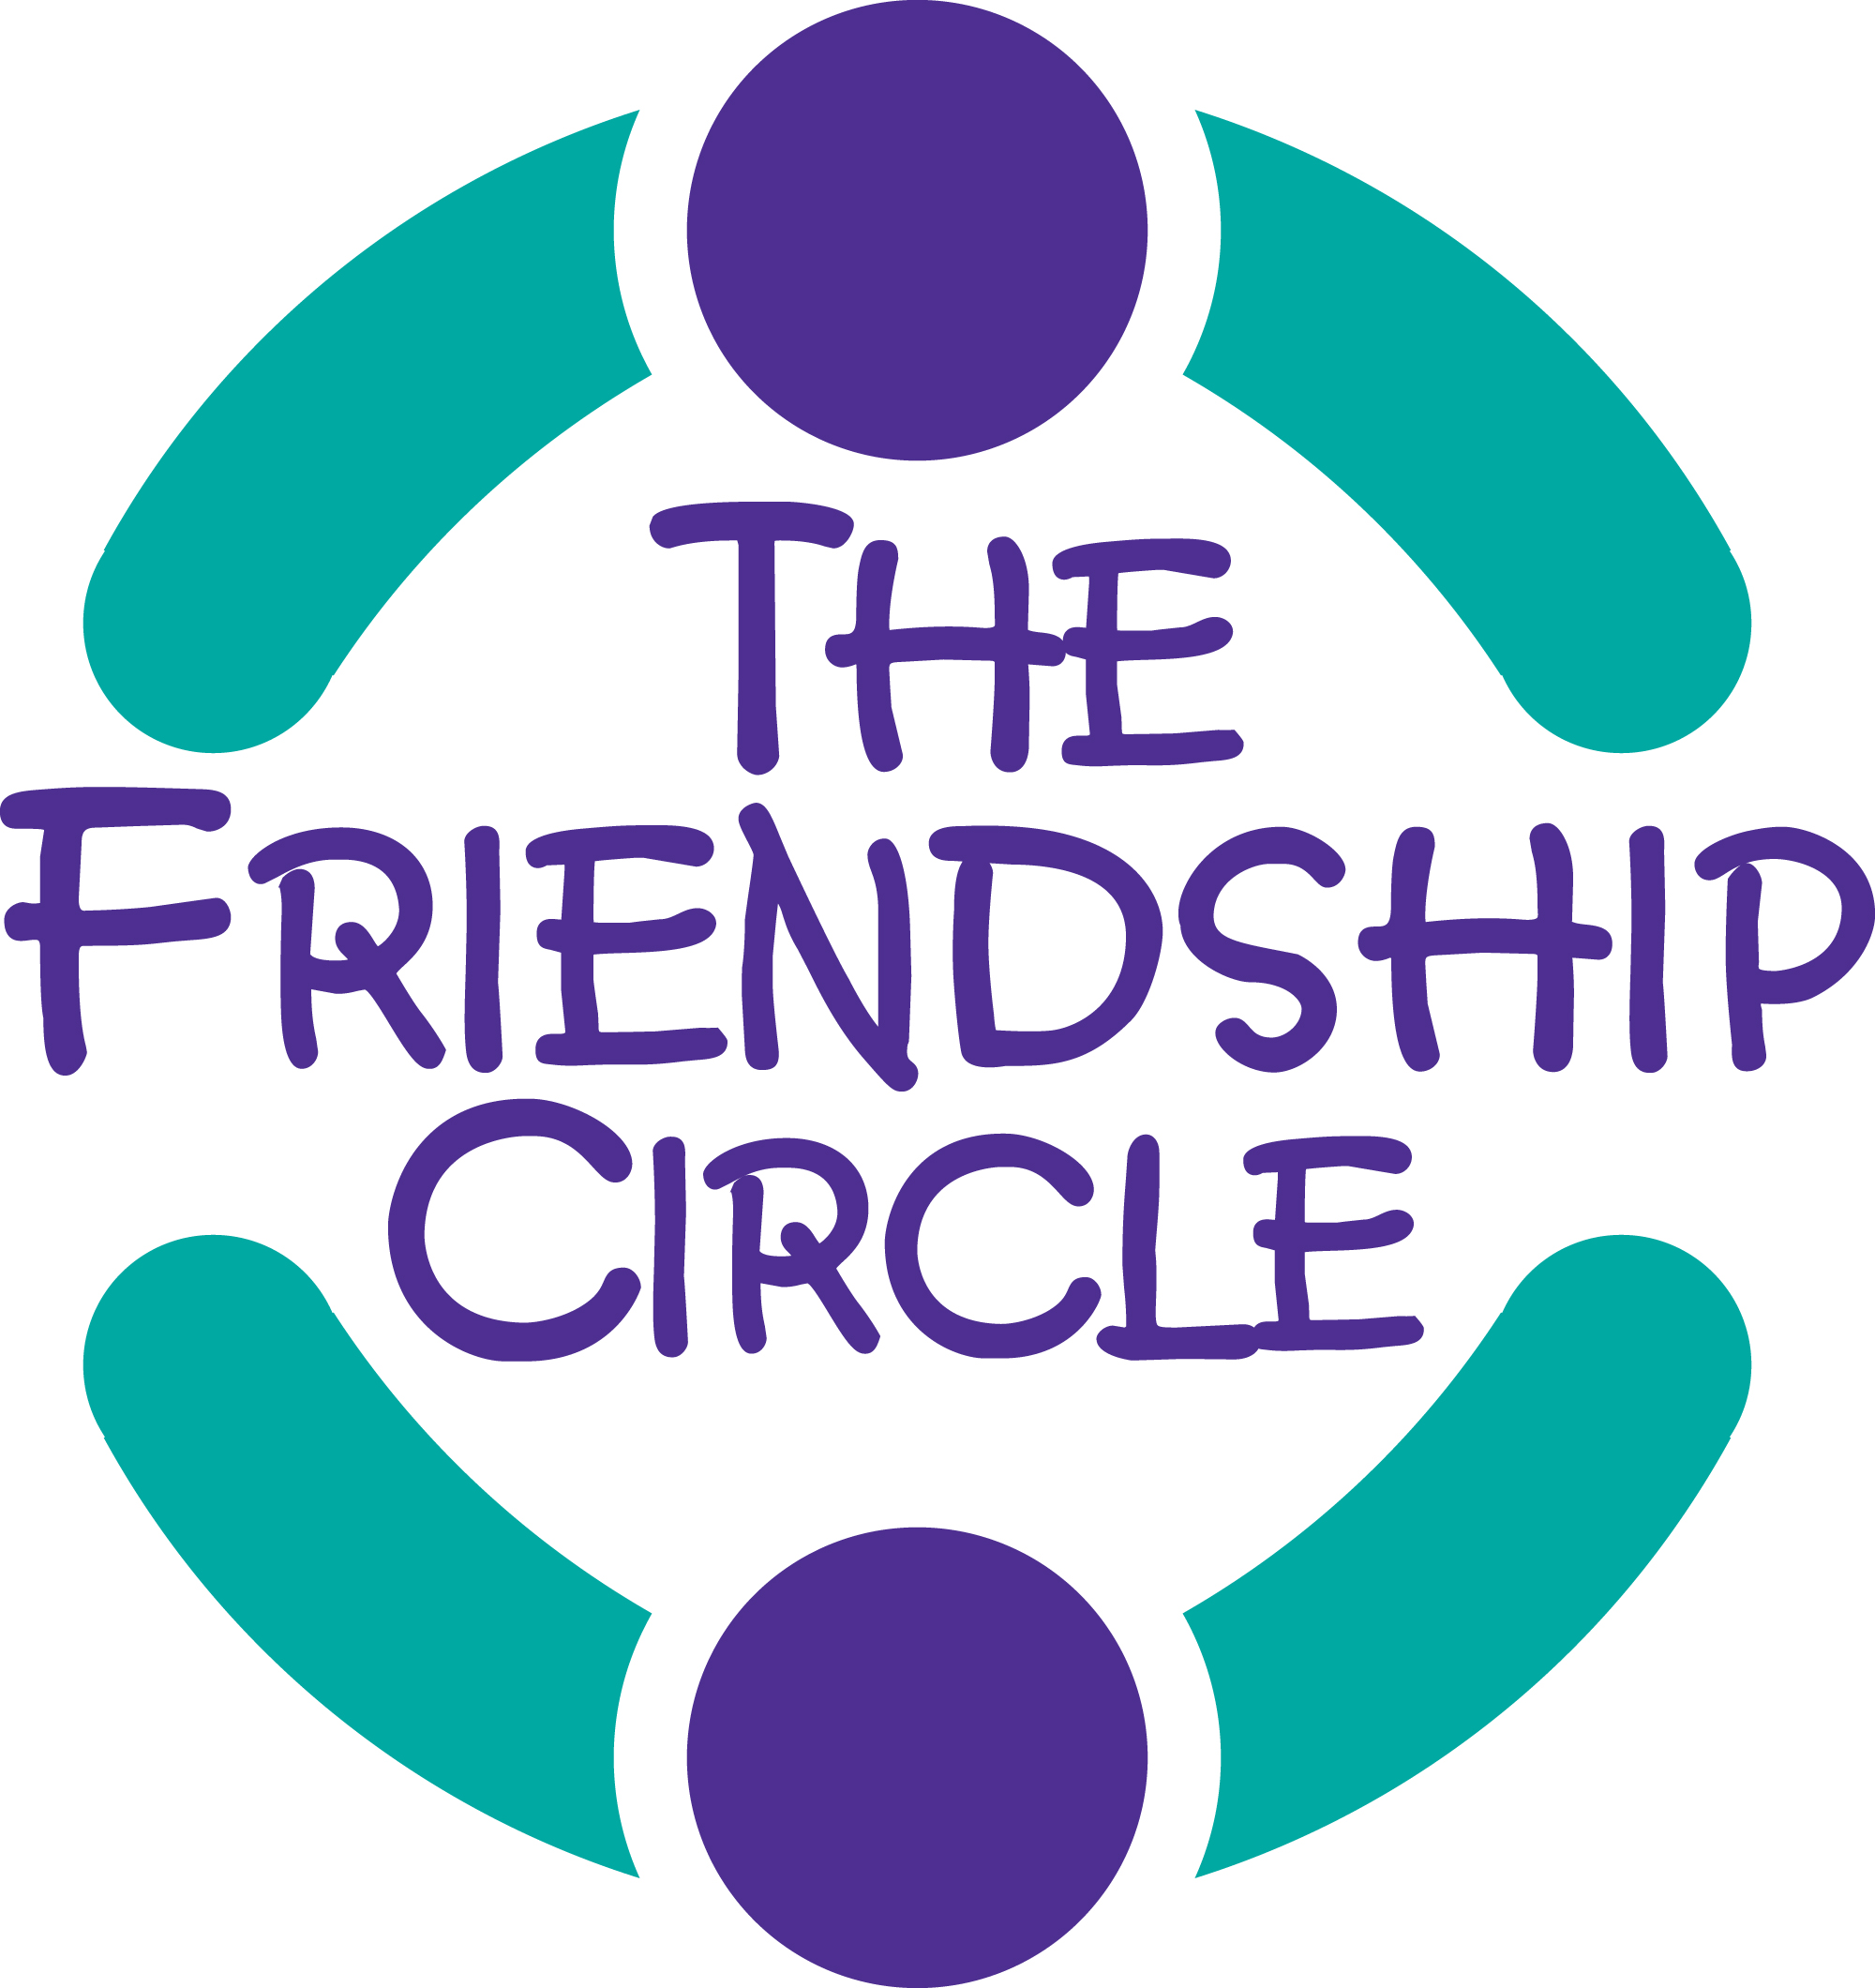 Friendship-Circle-Logo-high-res.jpg